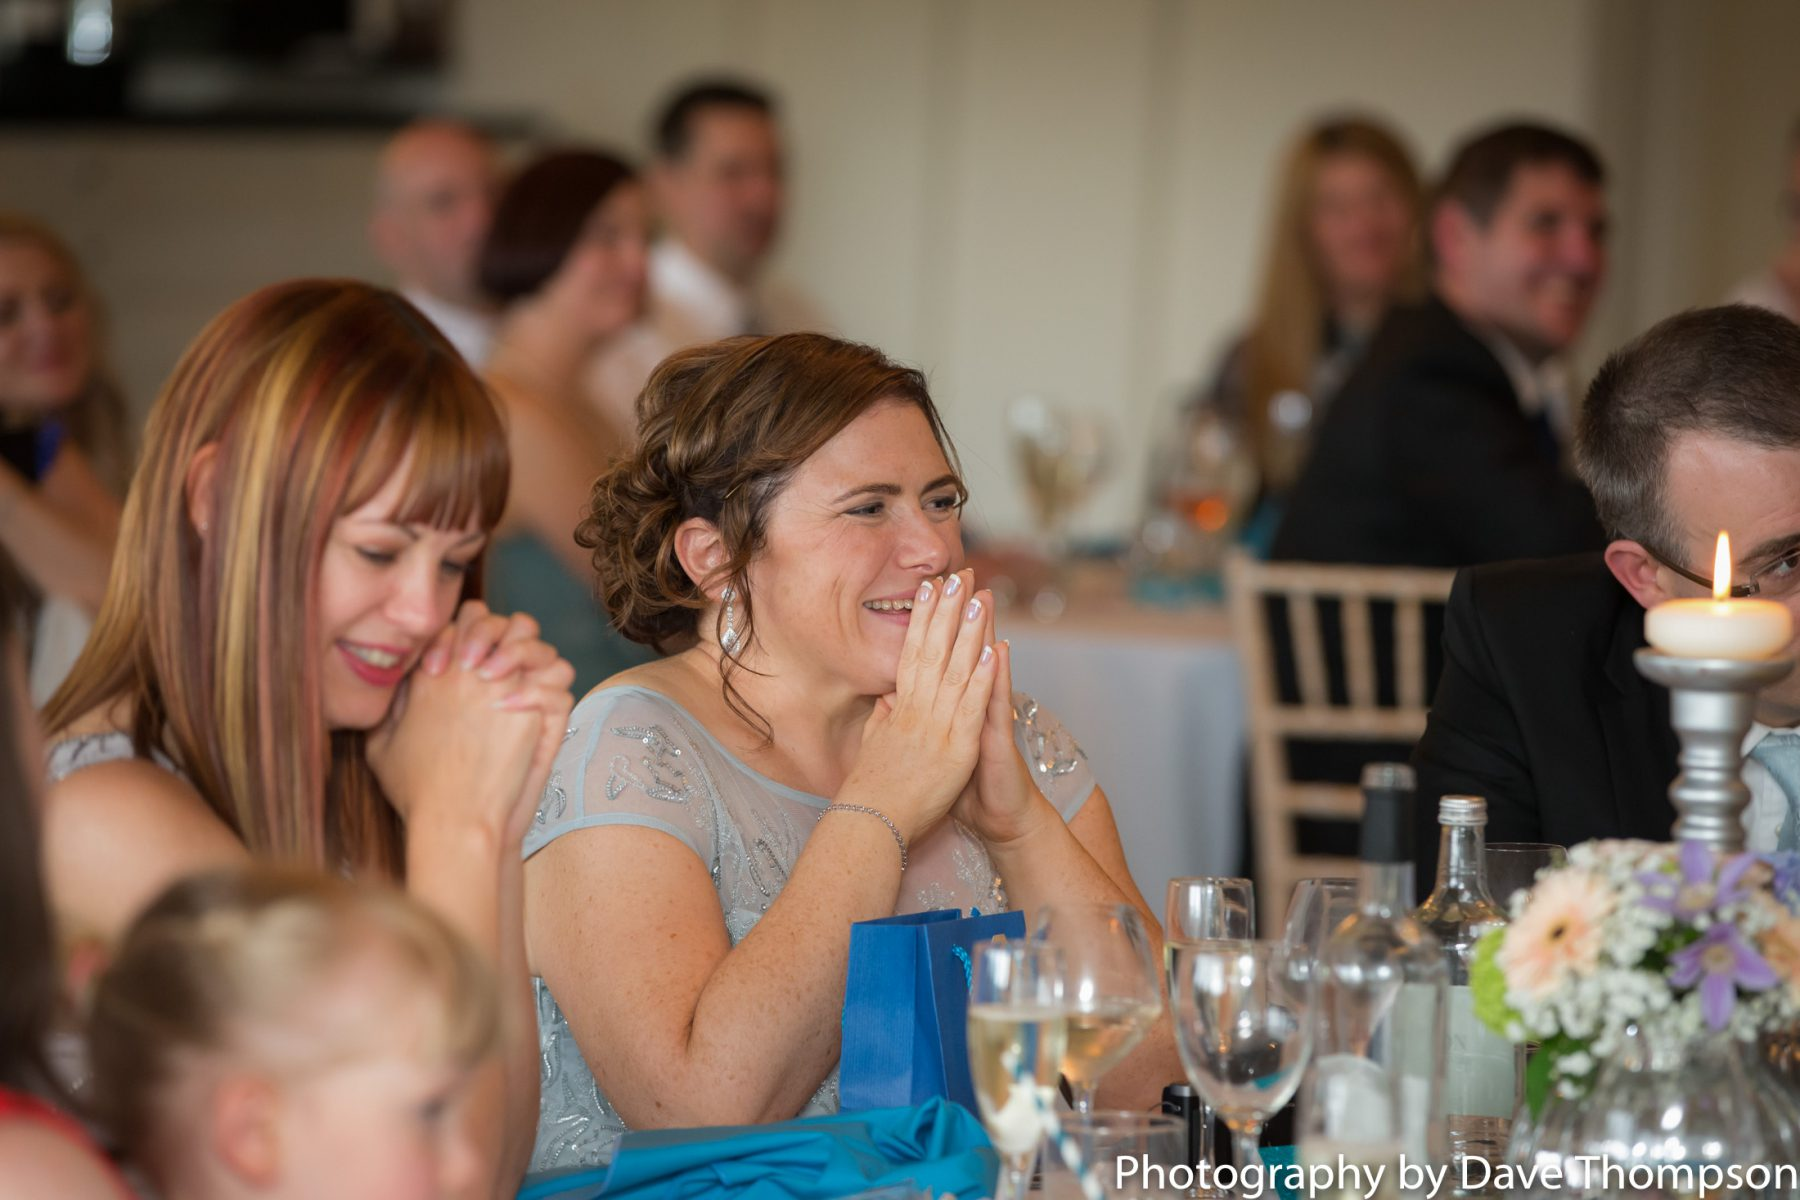 A guest laughs during the speeches